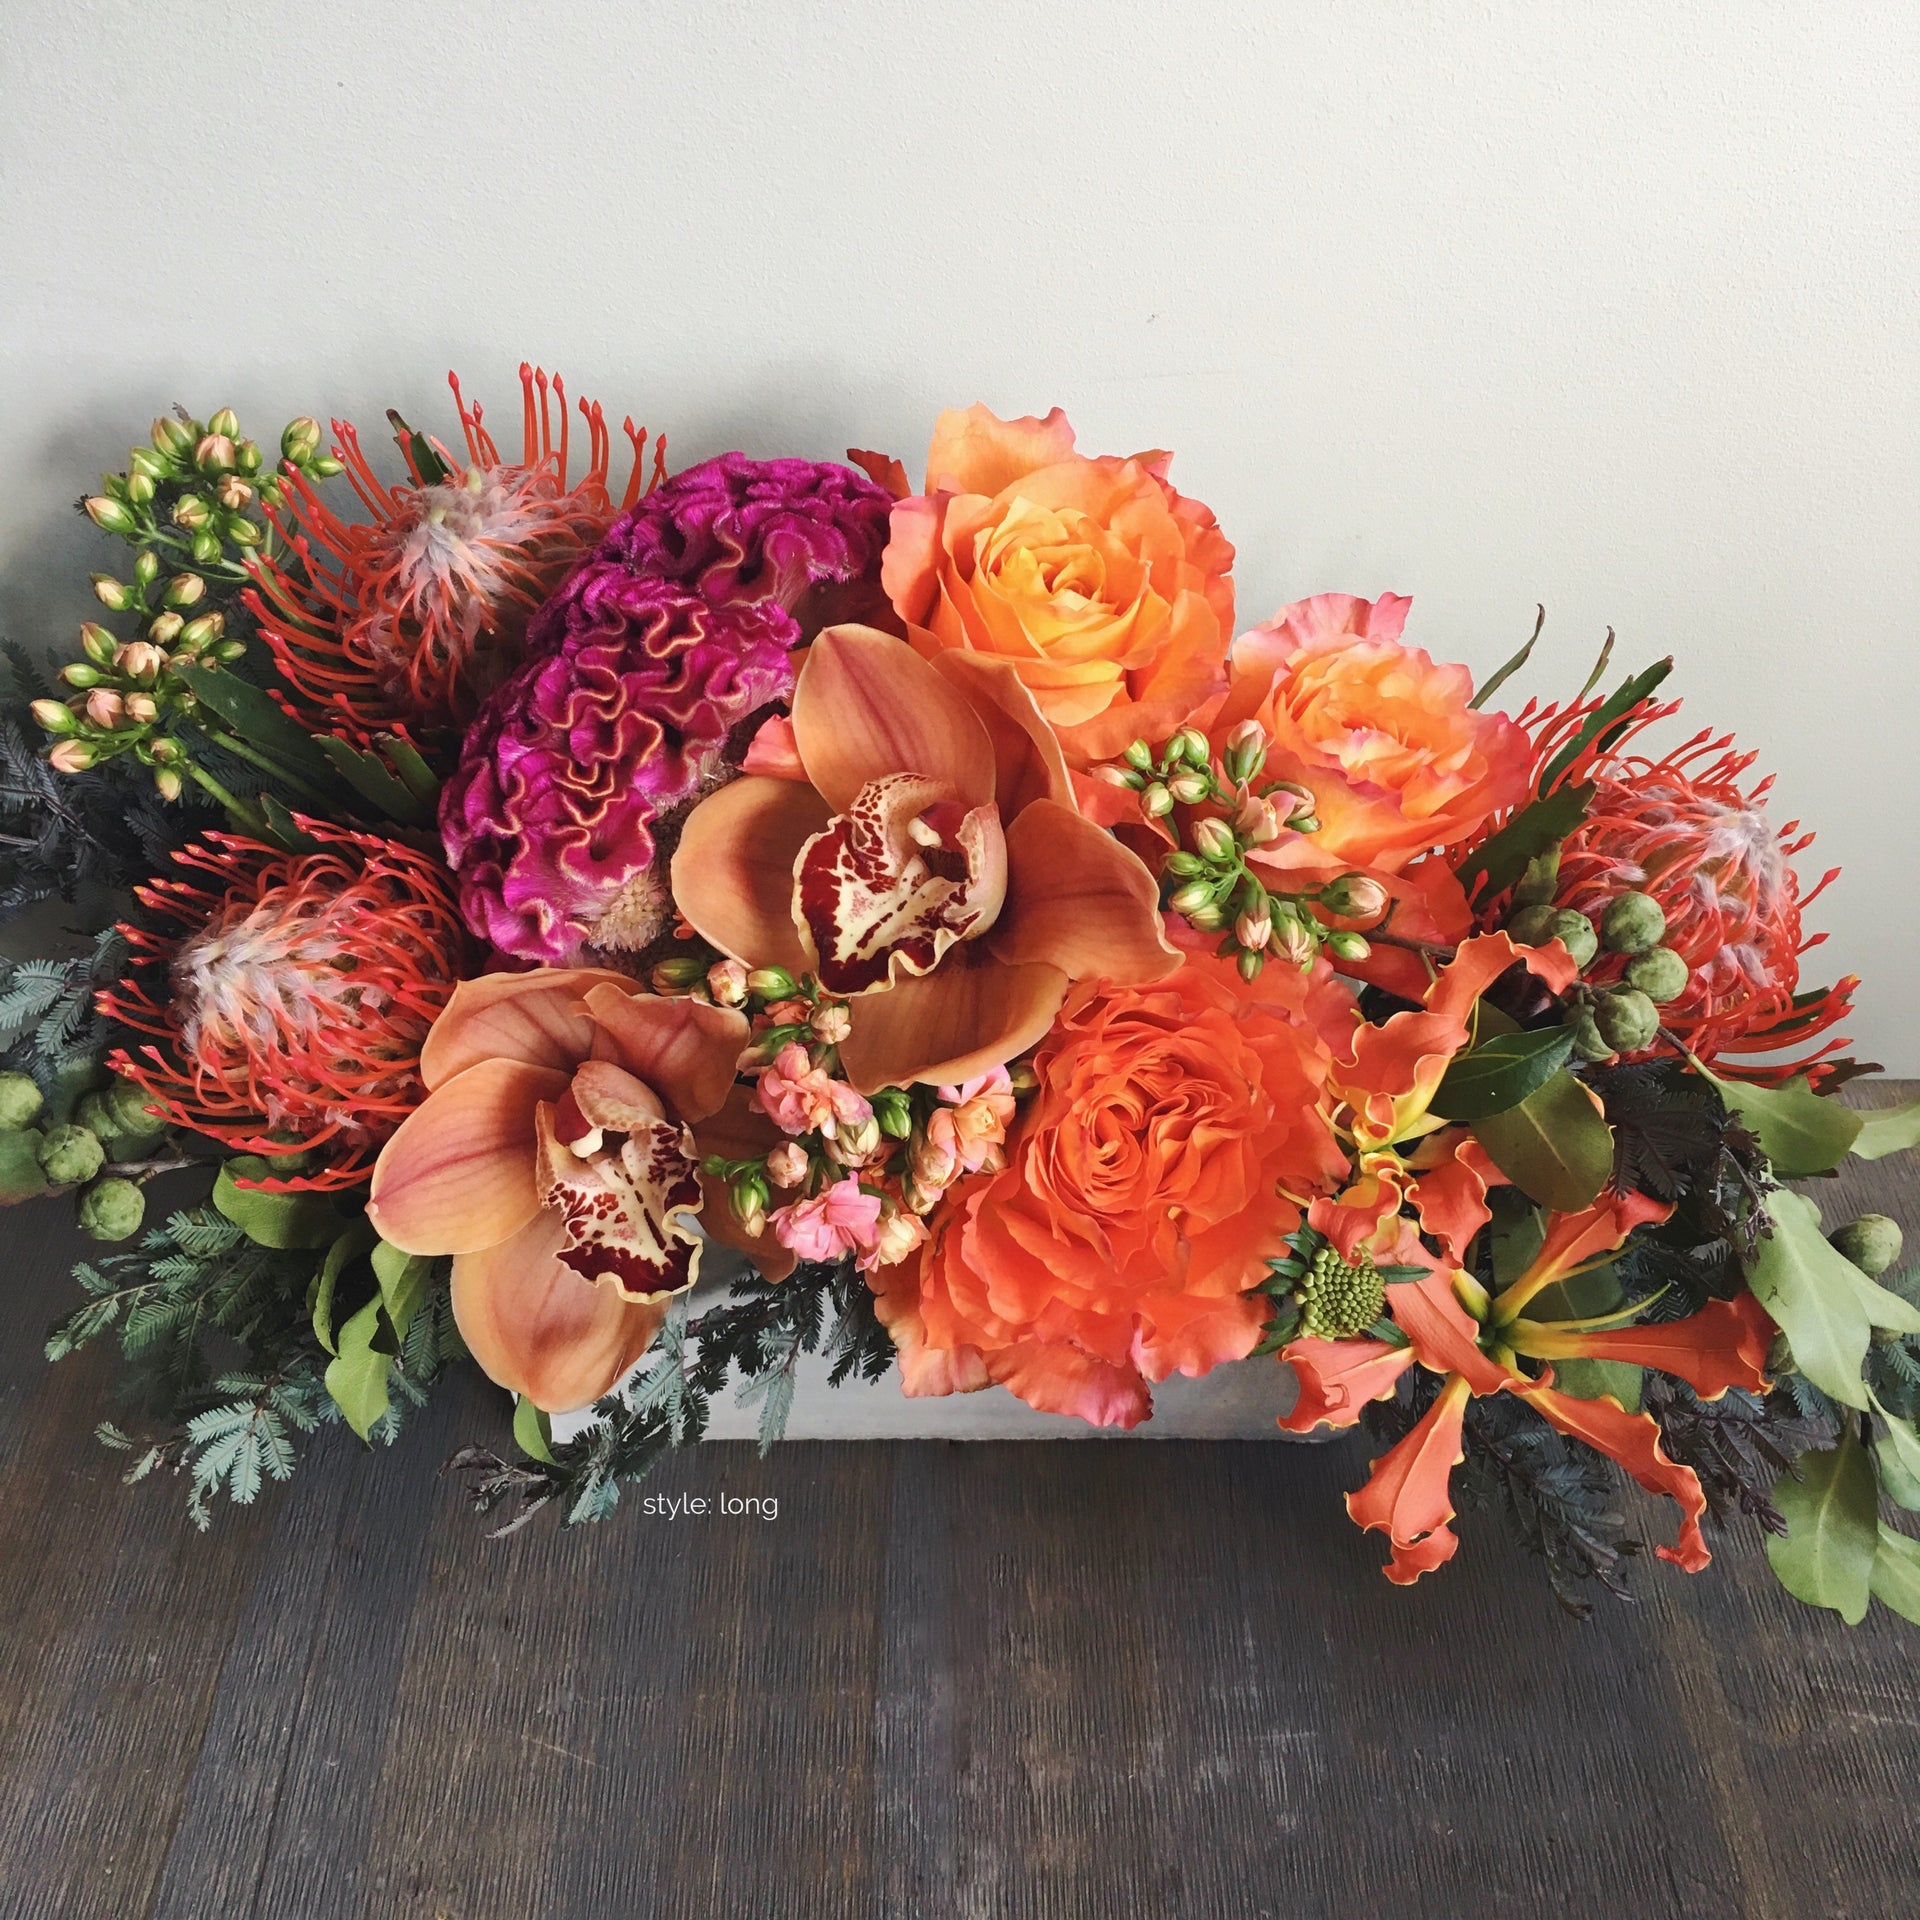 Long and low fall arrangement using orchids, roses, and pin-cushion protea.